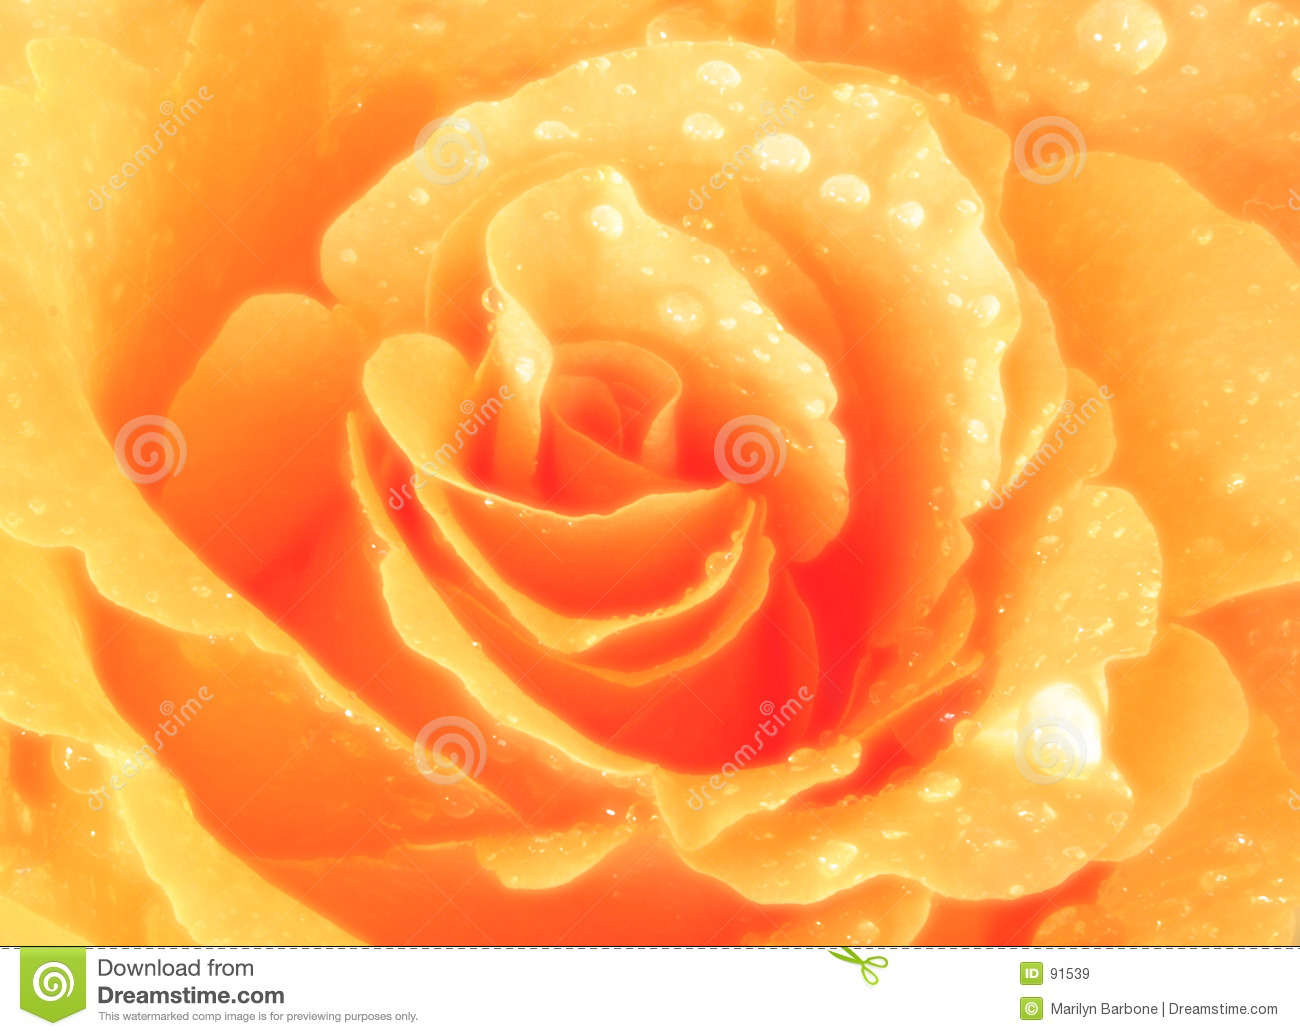 Close up of a peach colored rose with water droplets.